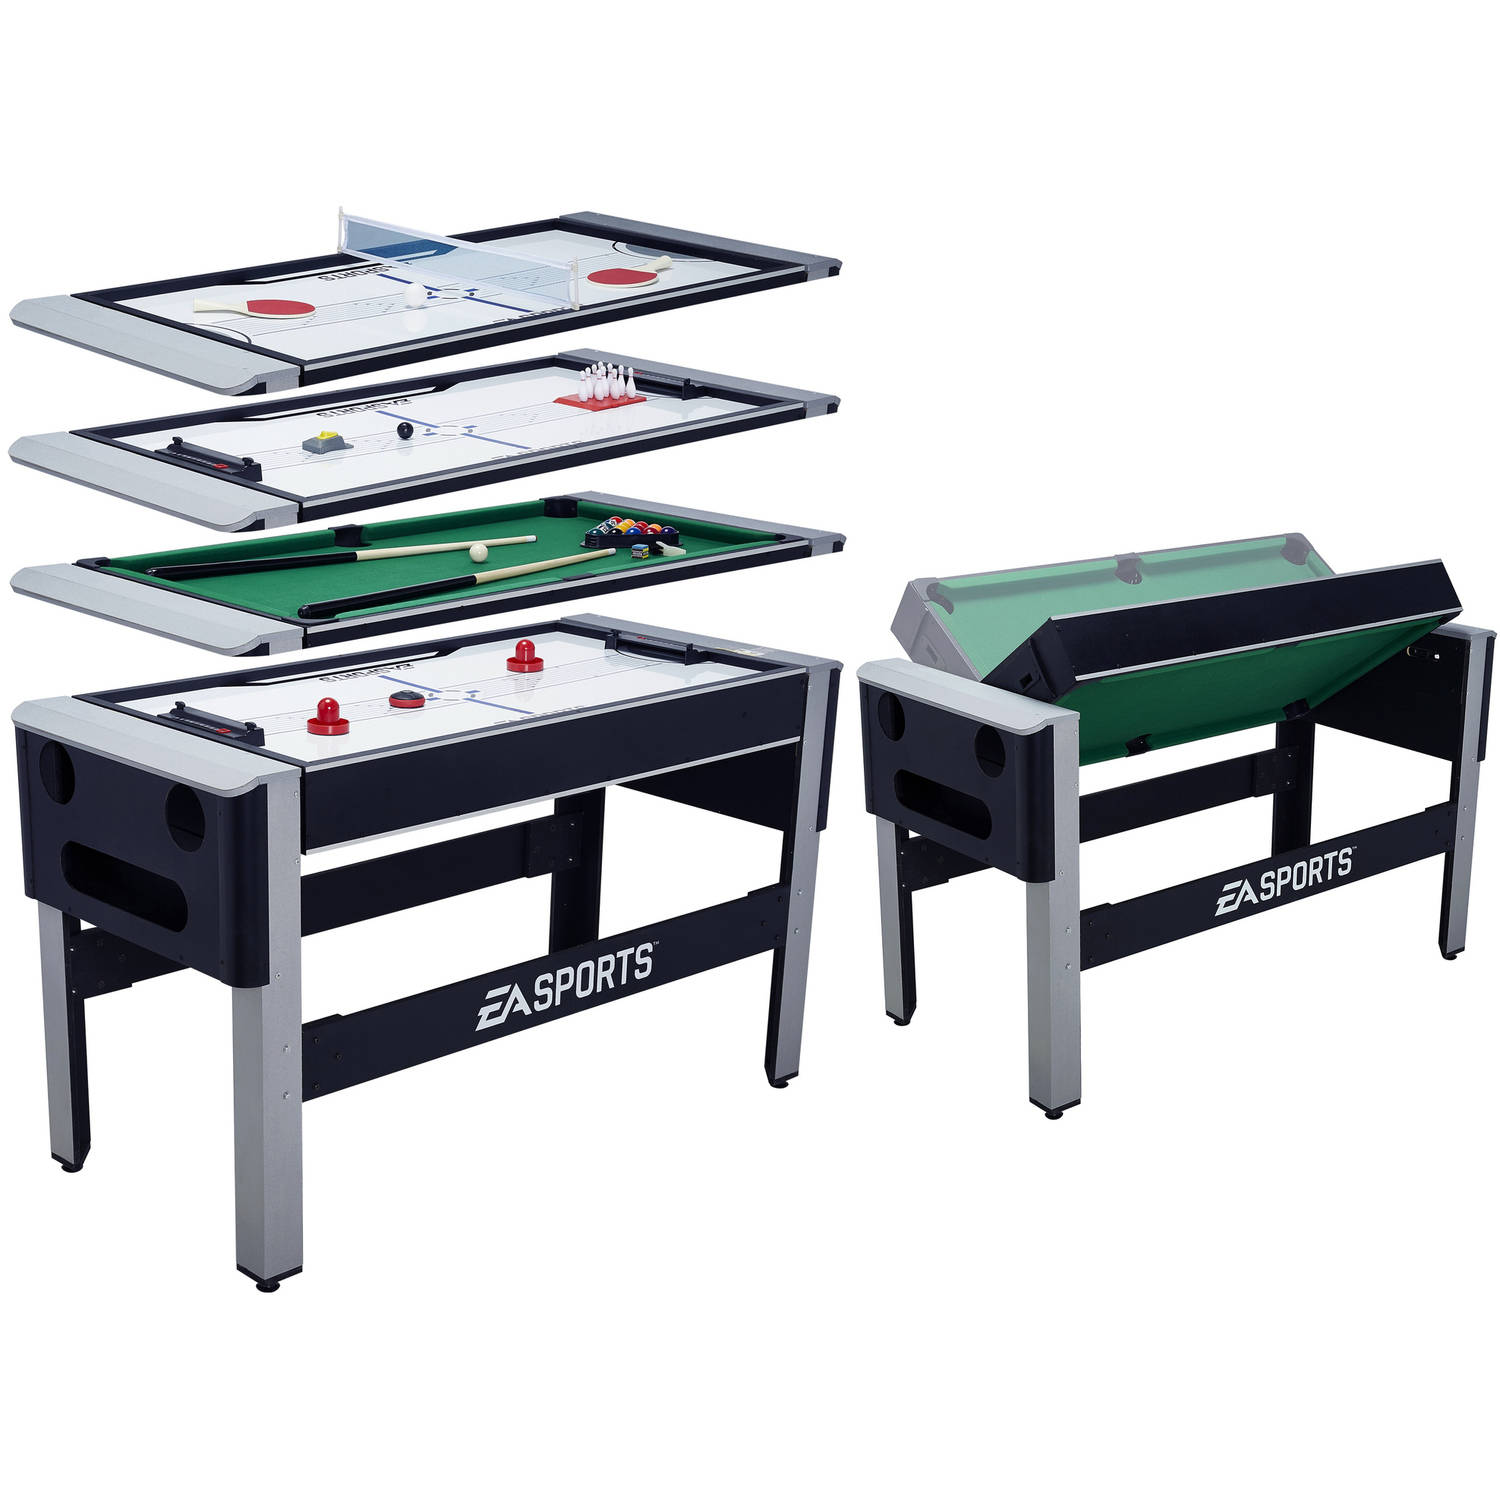 "EA SPORTS 54"" 4-in-1 Swivel Table"